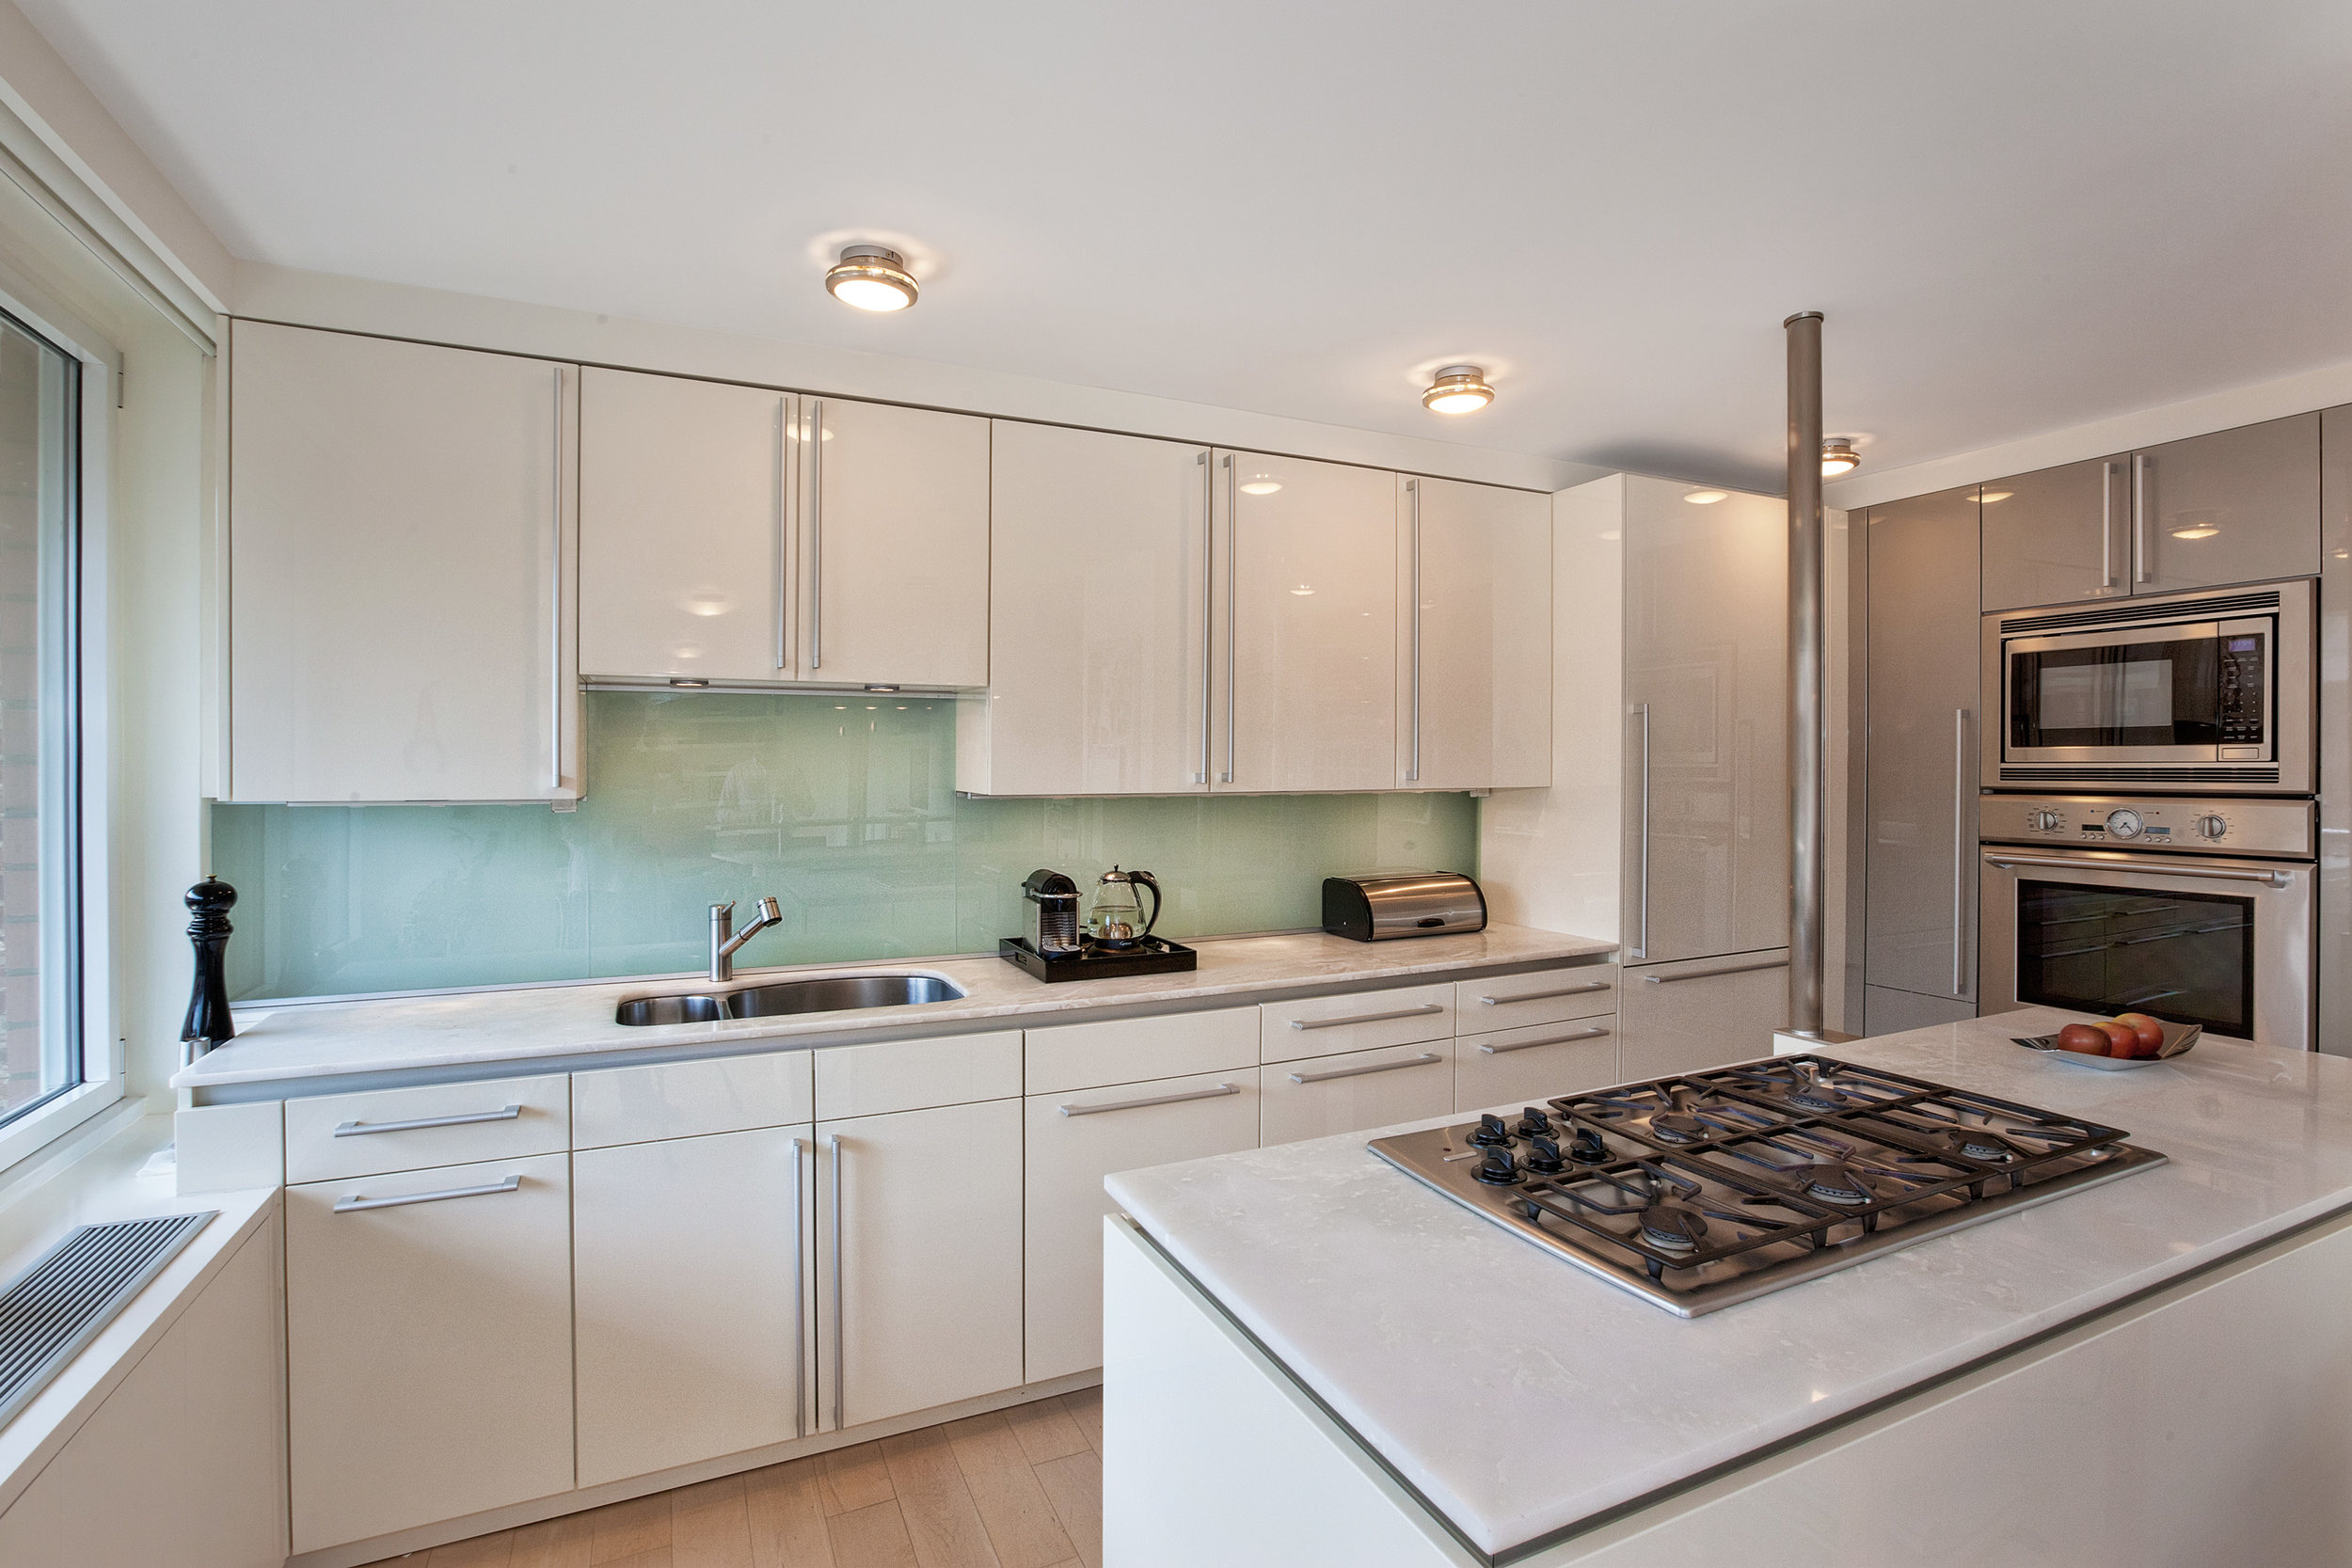 250West90thStreet17K_Dylan_Hildreth-Hoffman_DouglasElliman_Photography_28828923_high_res.jpg